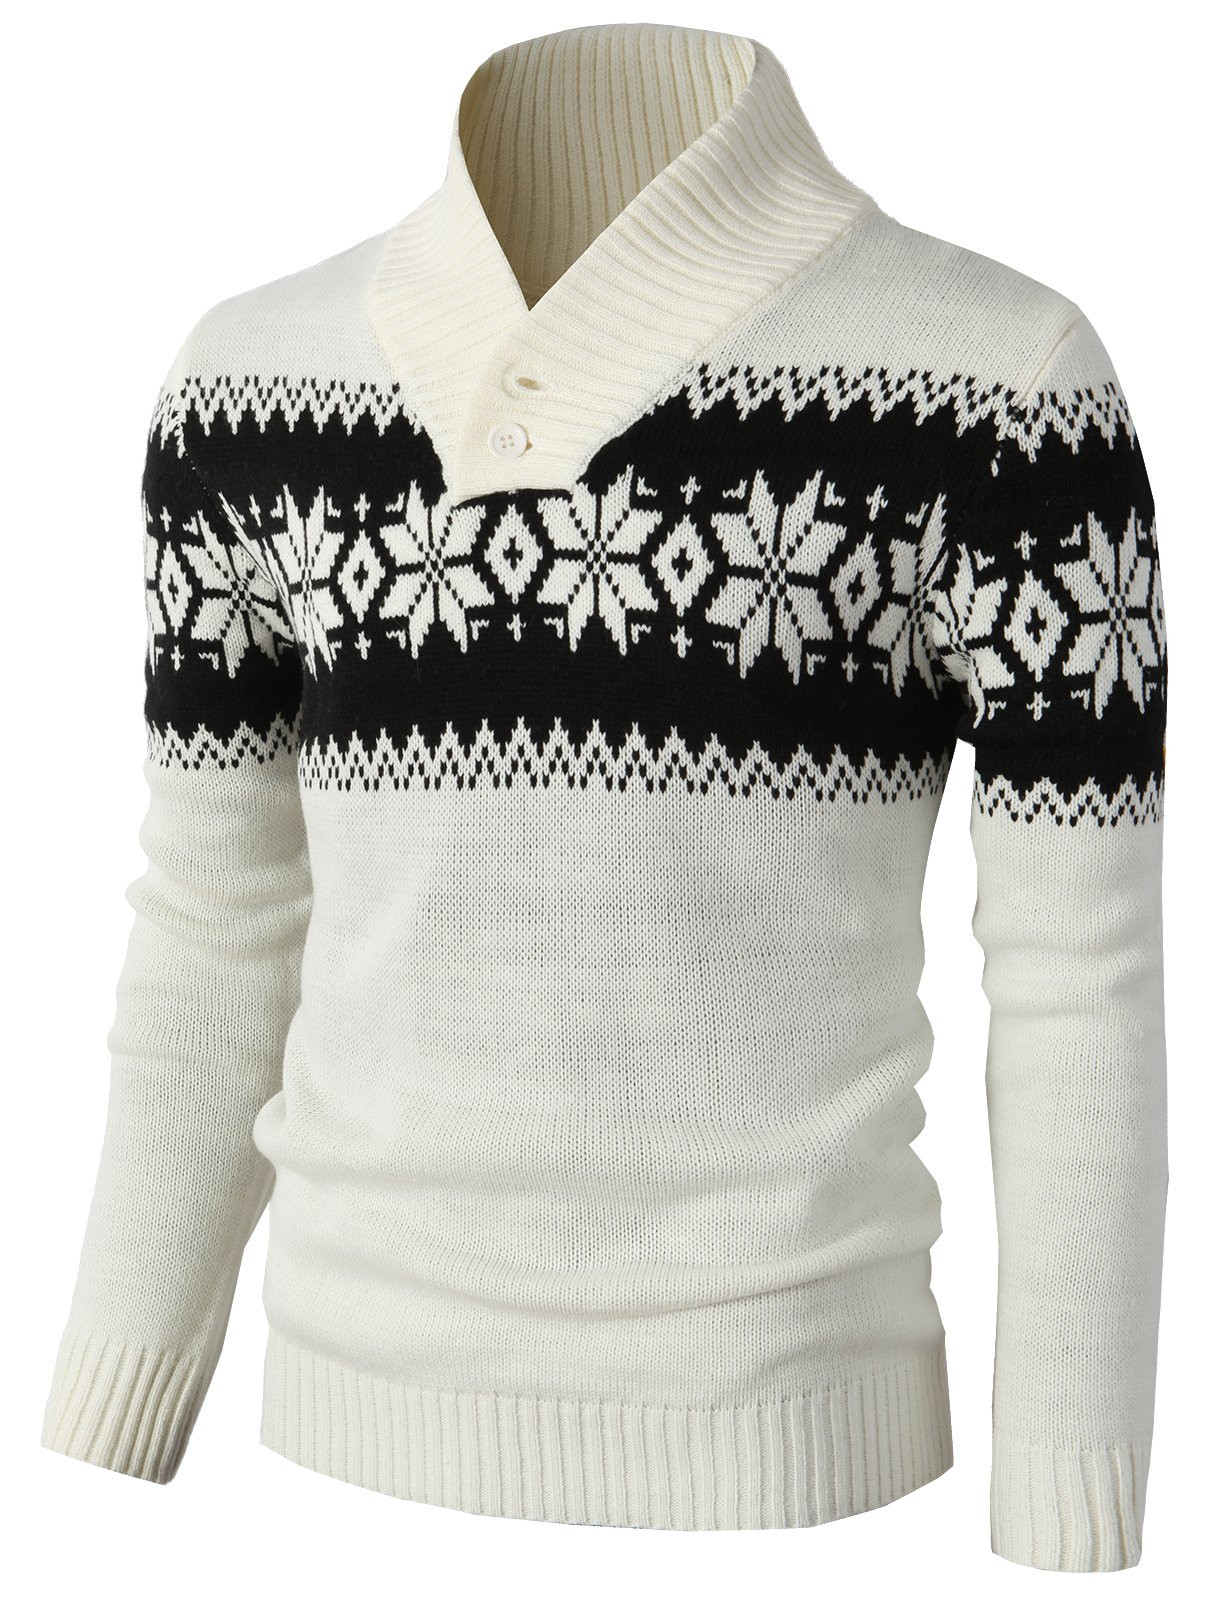 H2H Mens Casual Slim Fit Shawl Collar Pullover Sweater with Rib-Banded White US XL/Asia 2XL (KMOSWL0102)